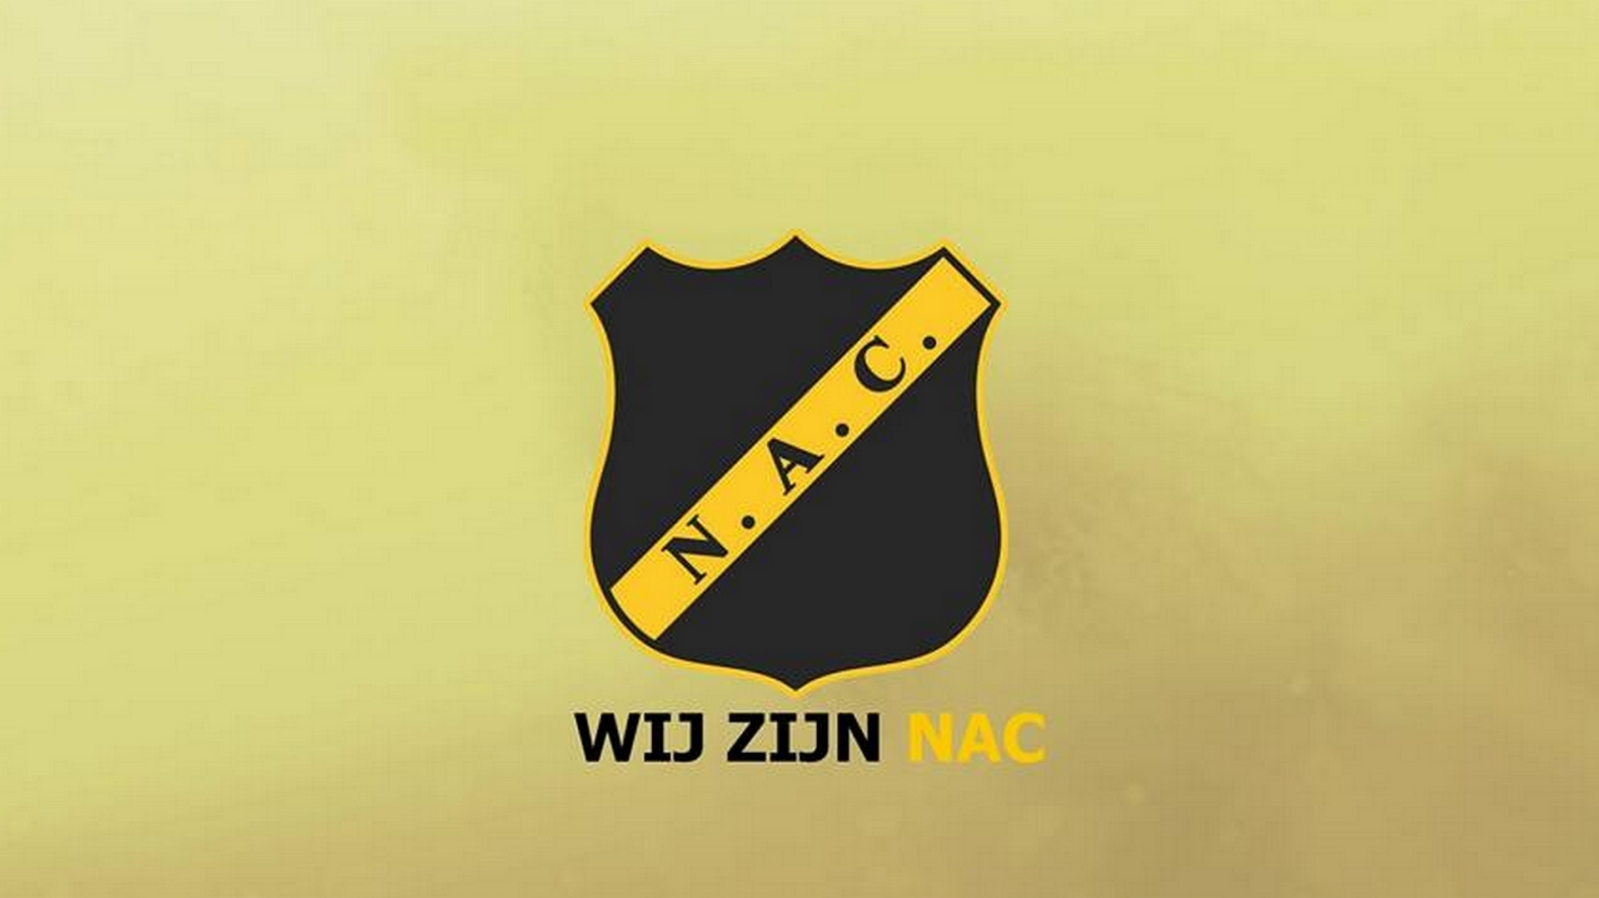 Best 54 NAC Breda Wallpaper on HipWallpaper NAC Breda Wallpaper 1599x898